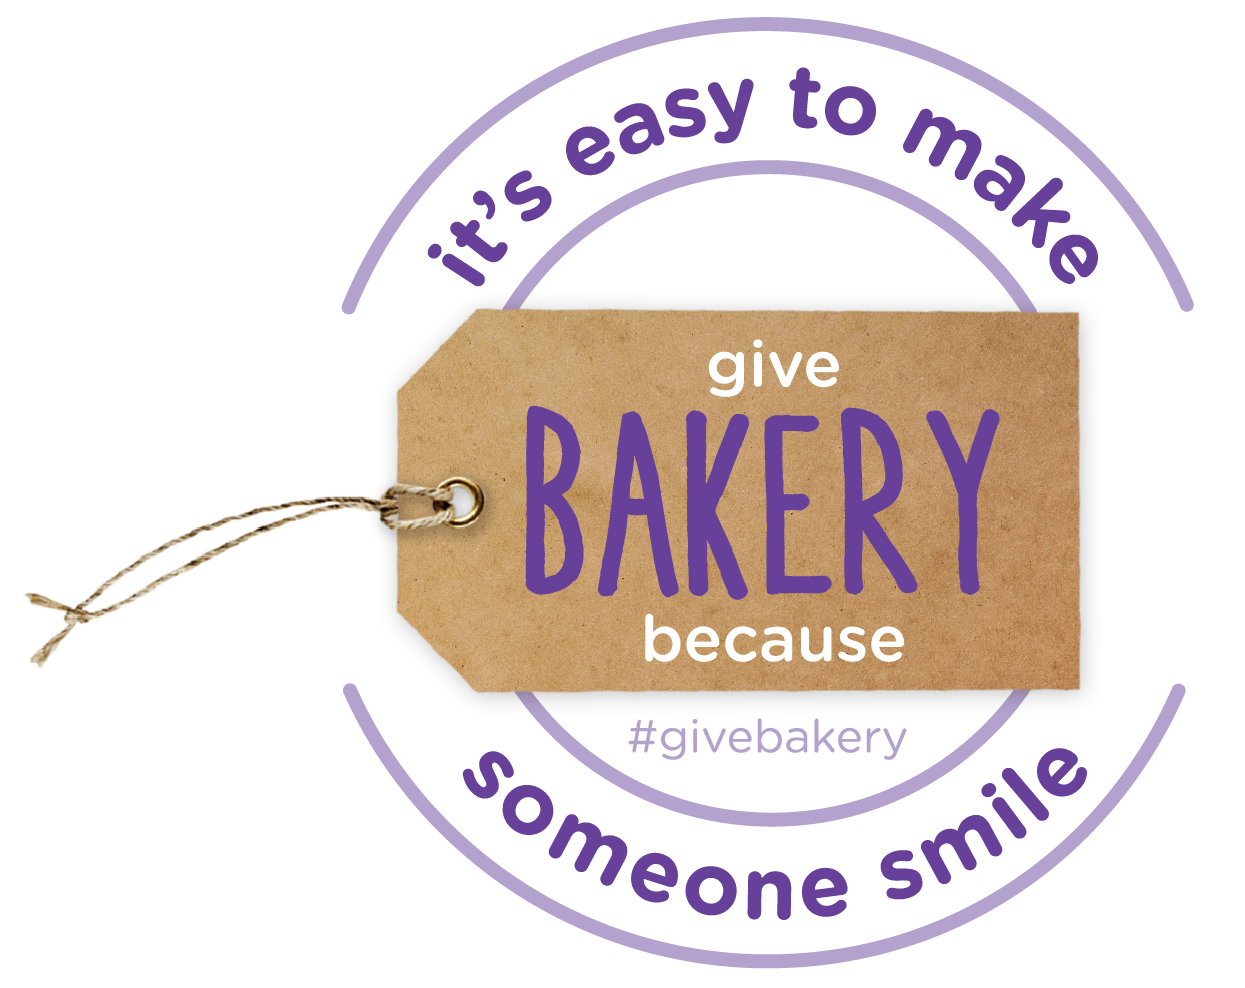 Fun collaboration between Give Bakery Because and Flirting with Flavor